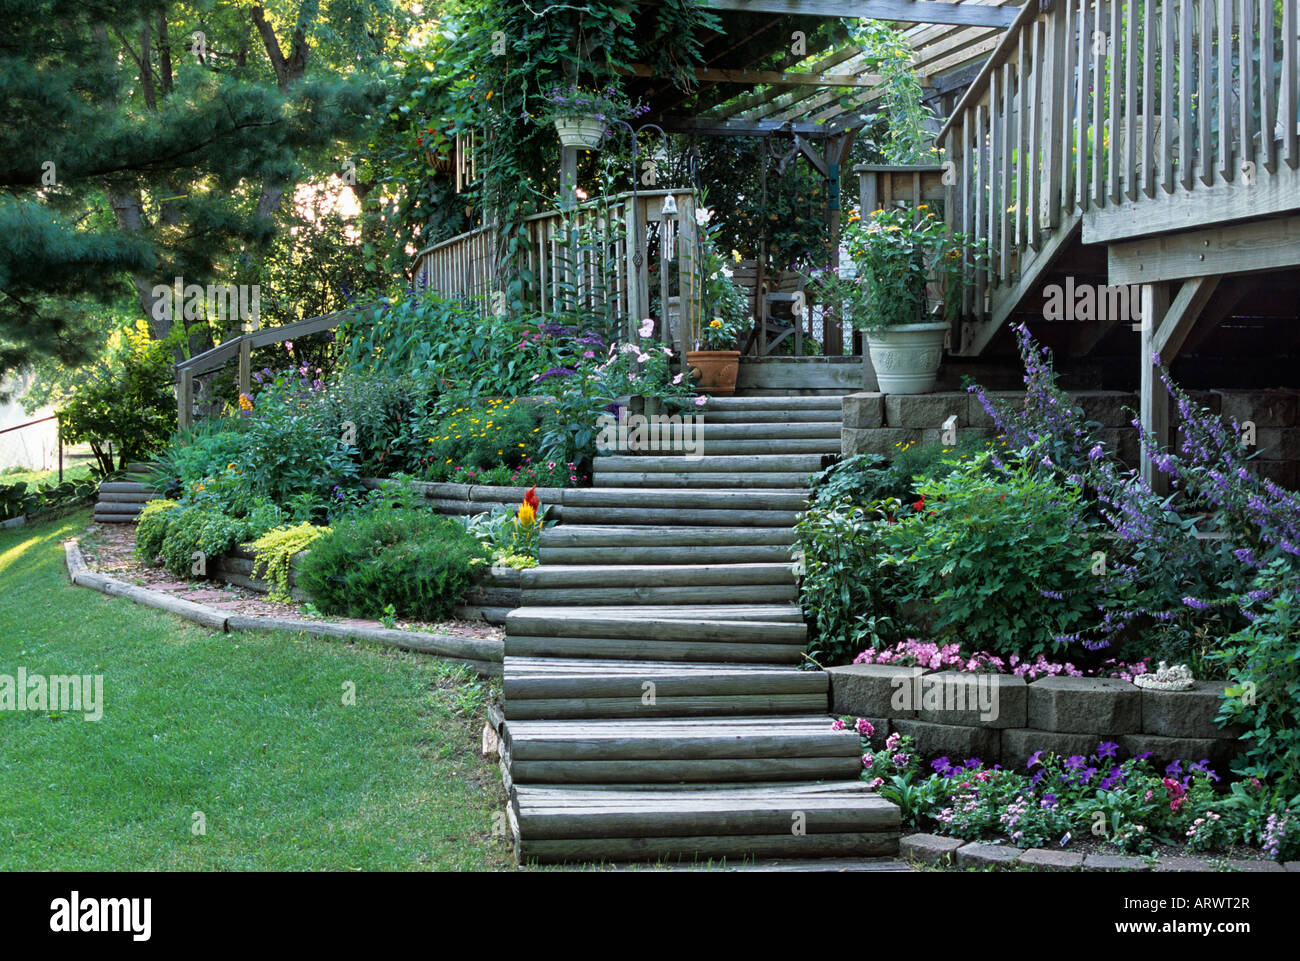 Uncategorized Terraced Gardens wood stairway through terraced gardens lead from deck to backyard of midwestern home summer